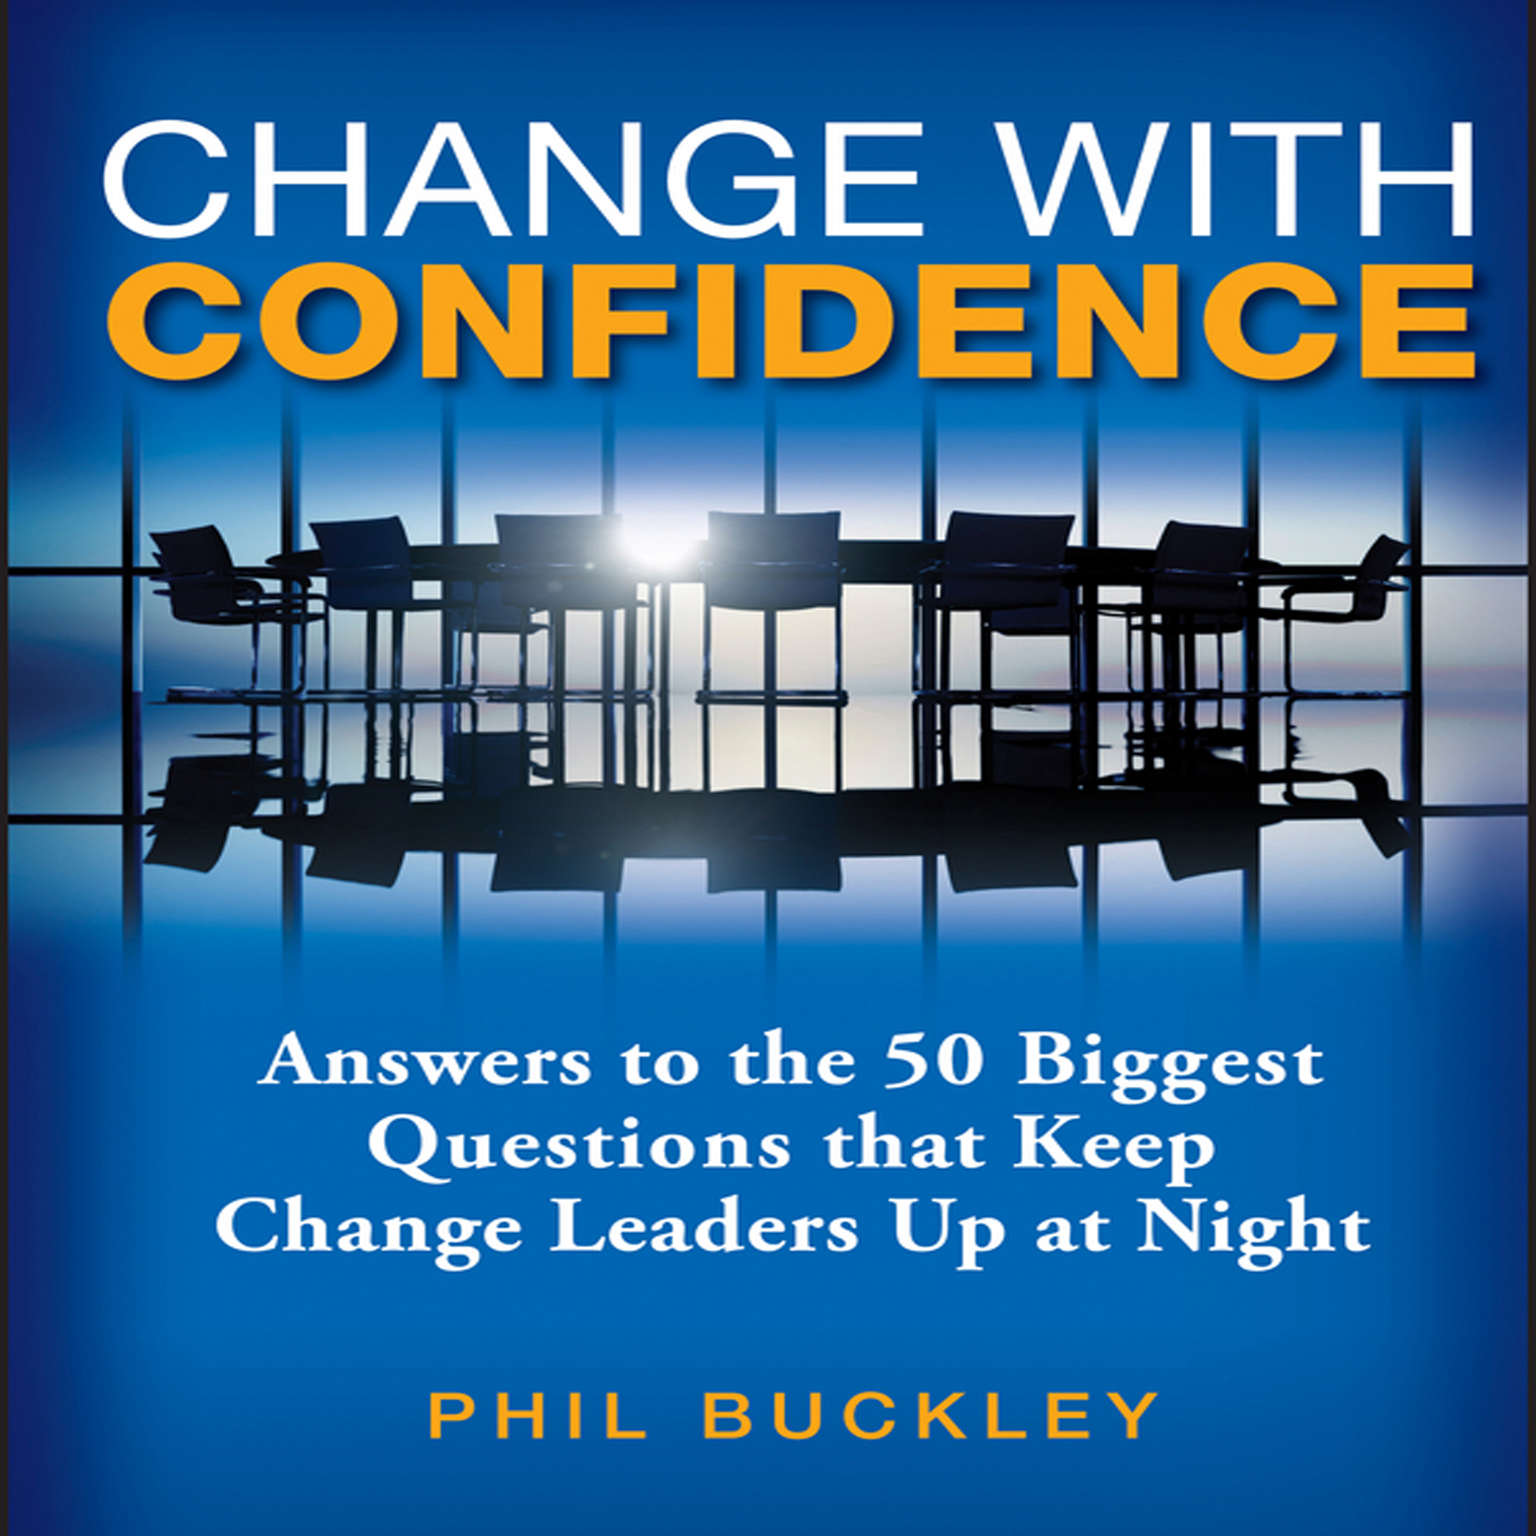 Change With Confidence: Answers to the 50 Biggest Questions that Keep Change Leaders Up at Night Audiobook, by Phil Buckley